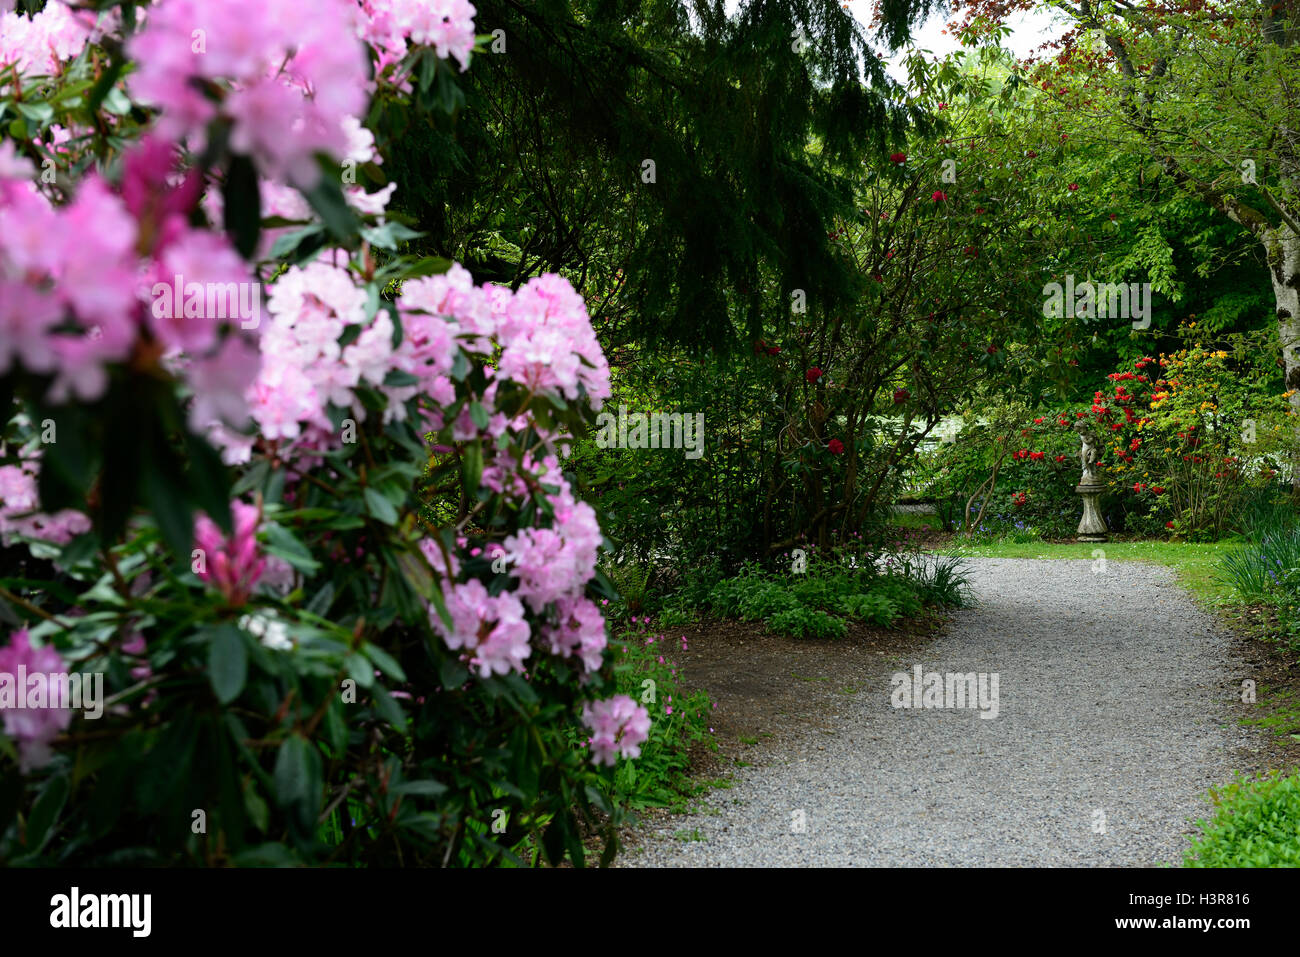 rhododendron Mrs EC Stirling tree trees shrubs flowers flowering shrub Altamont Gardens Carlow RM Floral - Stock Image